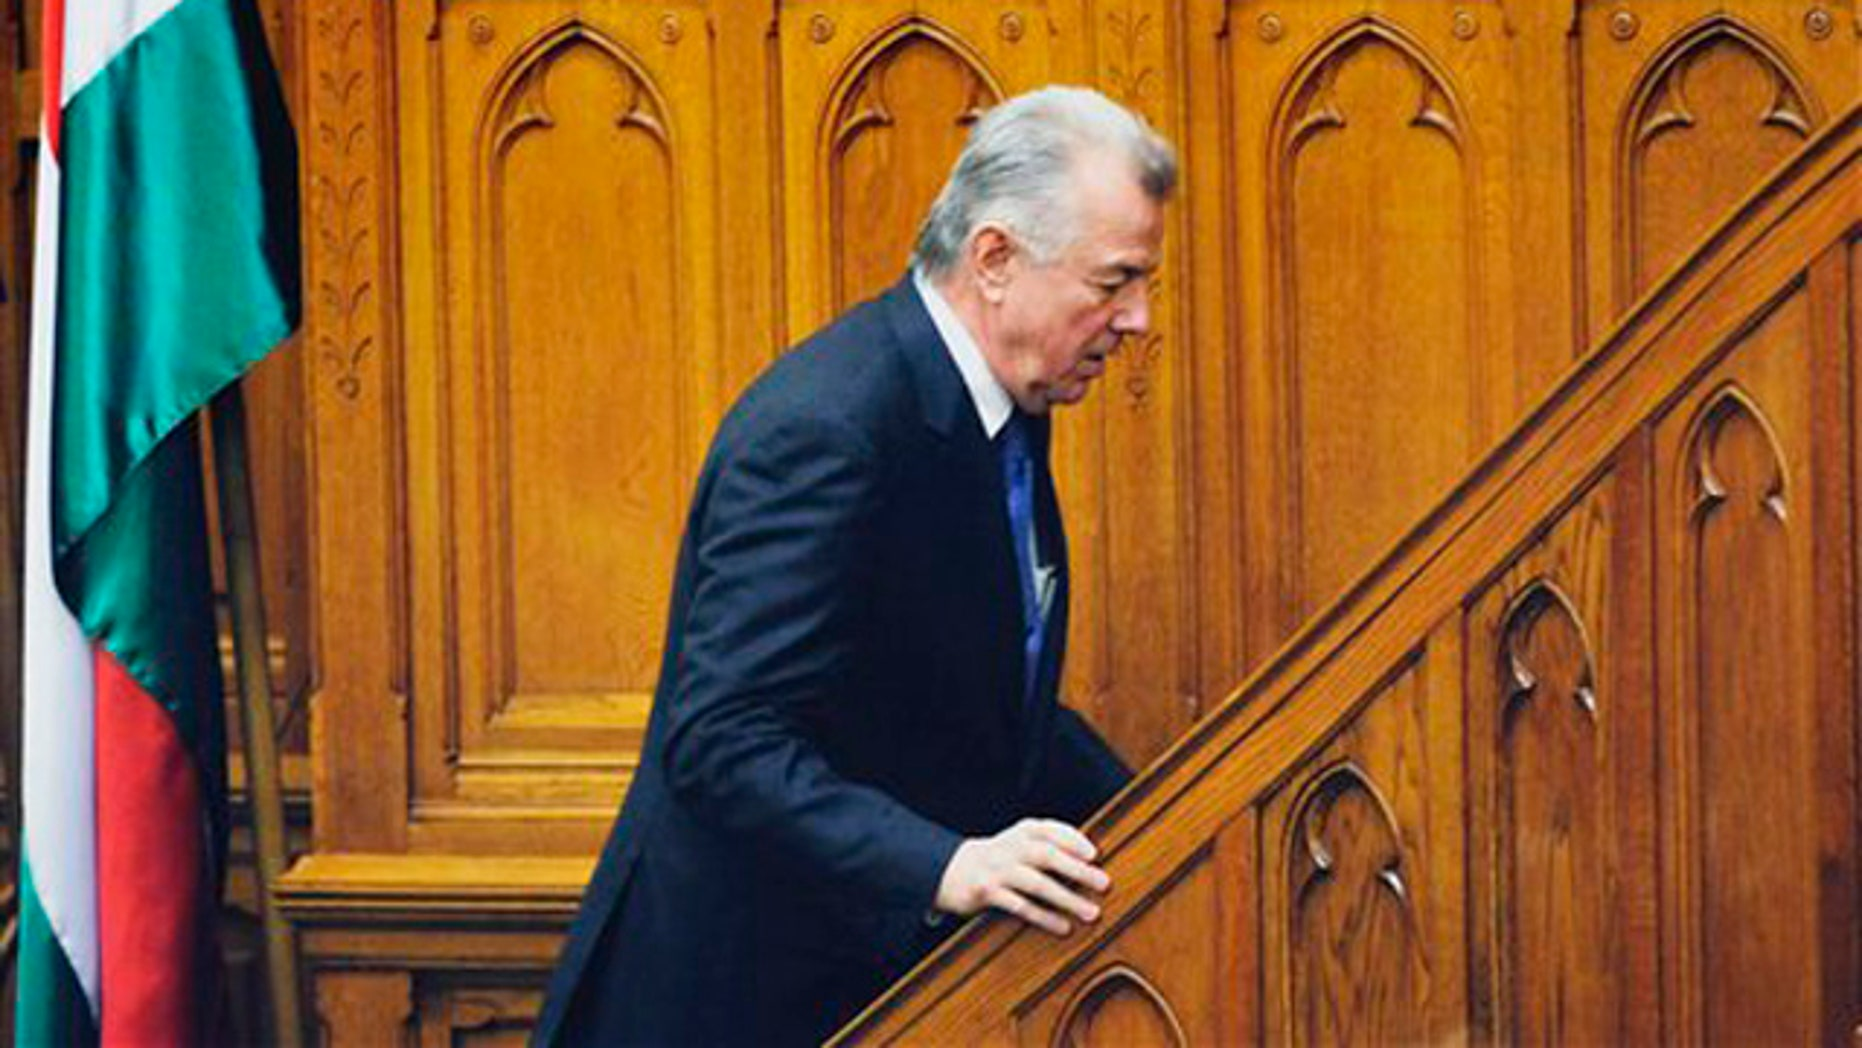 April 2, 2012: Hungarian President Pal Schmitt is seen on his way to the podium prior to his announcement of his resignation during the plenary session of the Parliament in Budapest, Hungary.